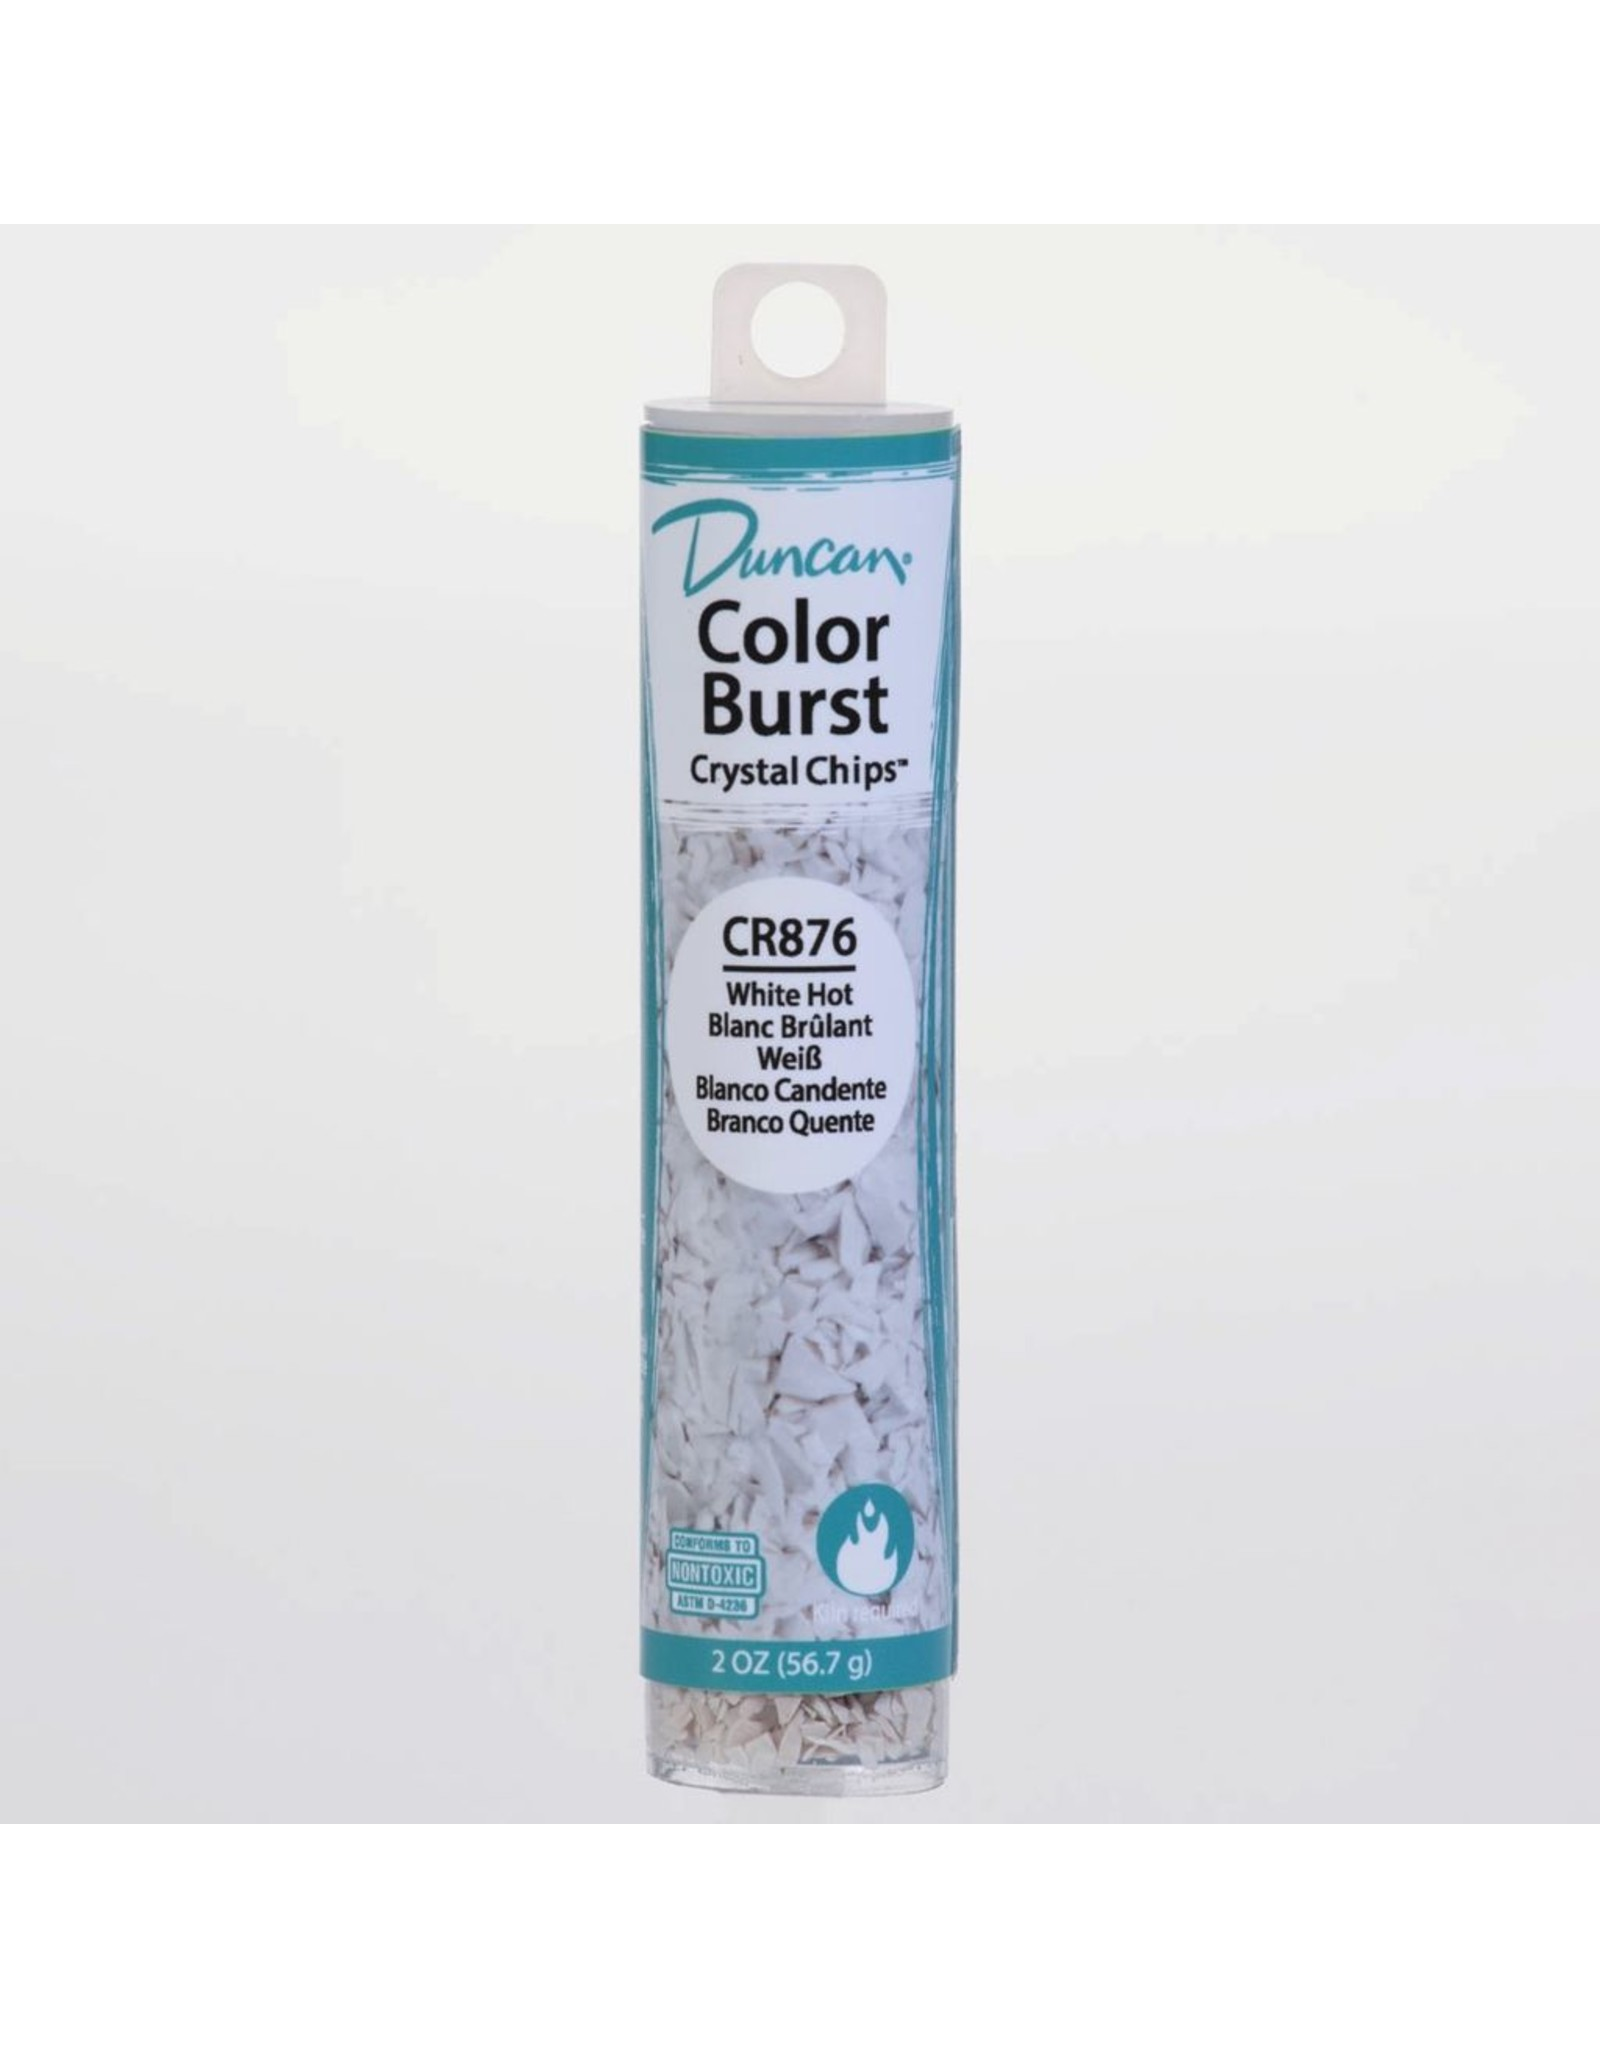 Potterycrafts Duncan Colour Burst Crystal Chips White Hot